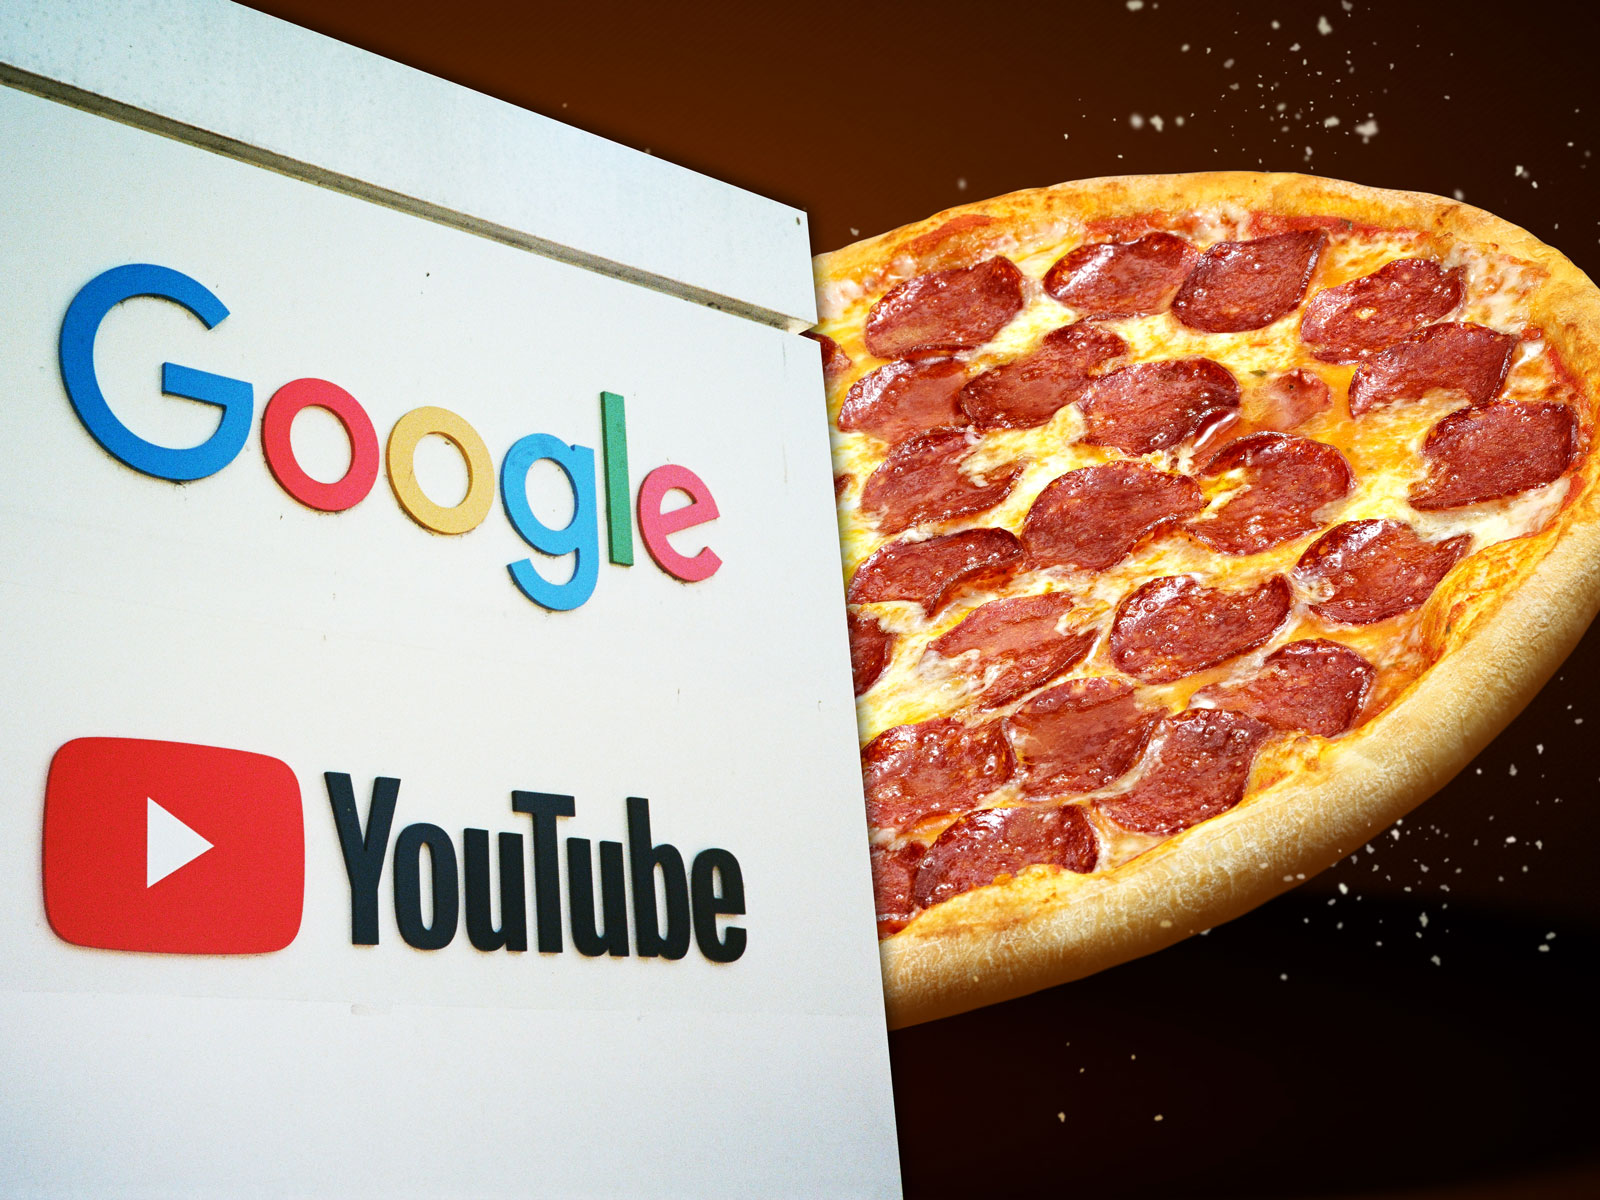 google-fake-pizza-ads-FT-BLOG0818.jpg